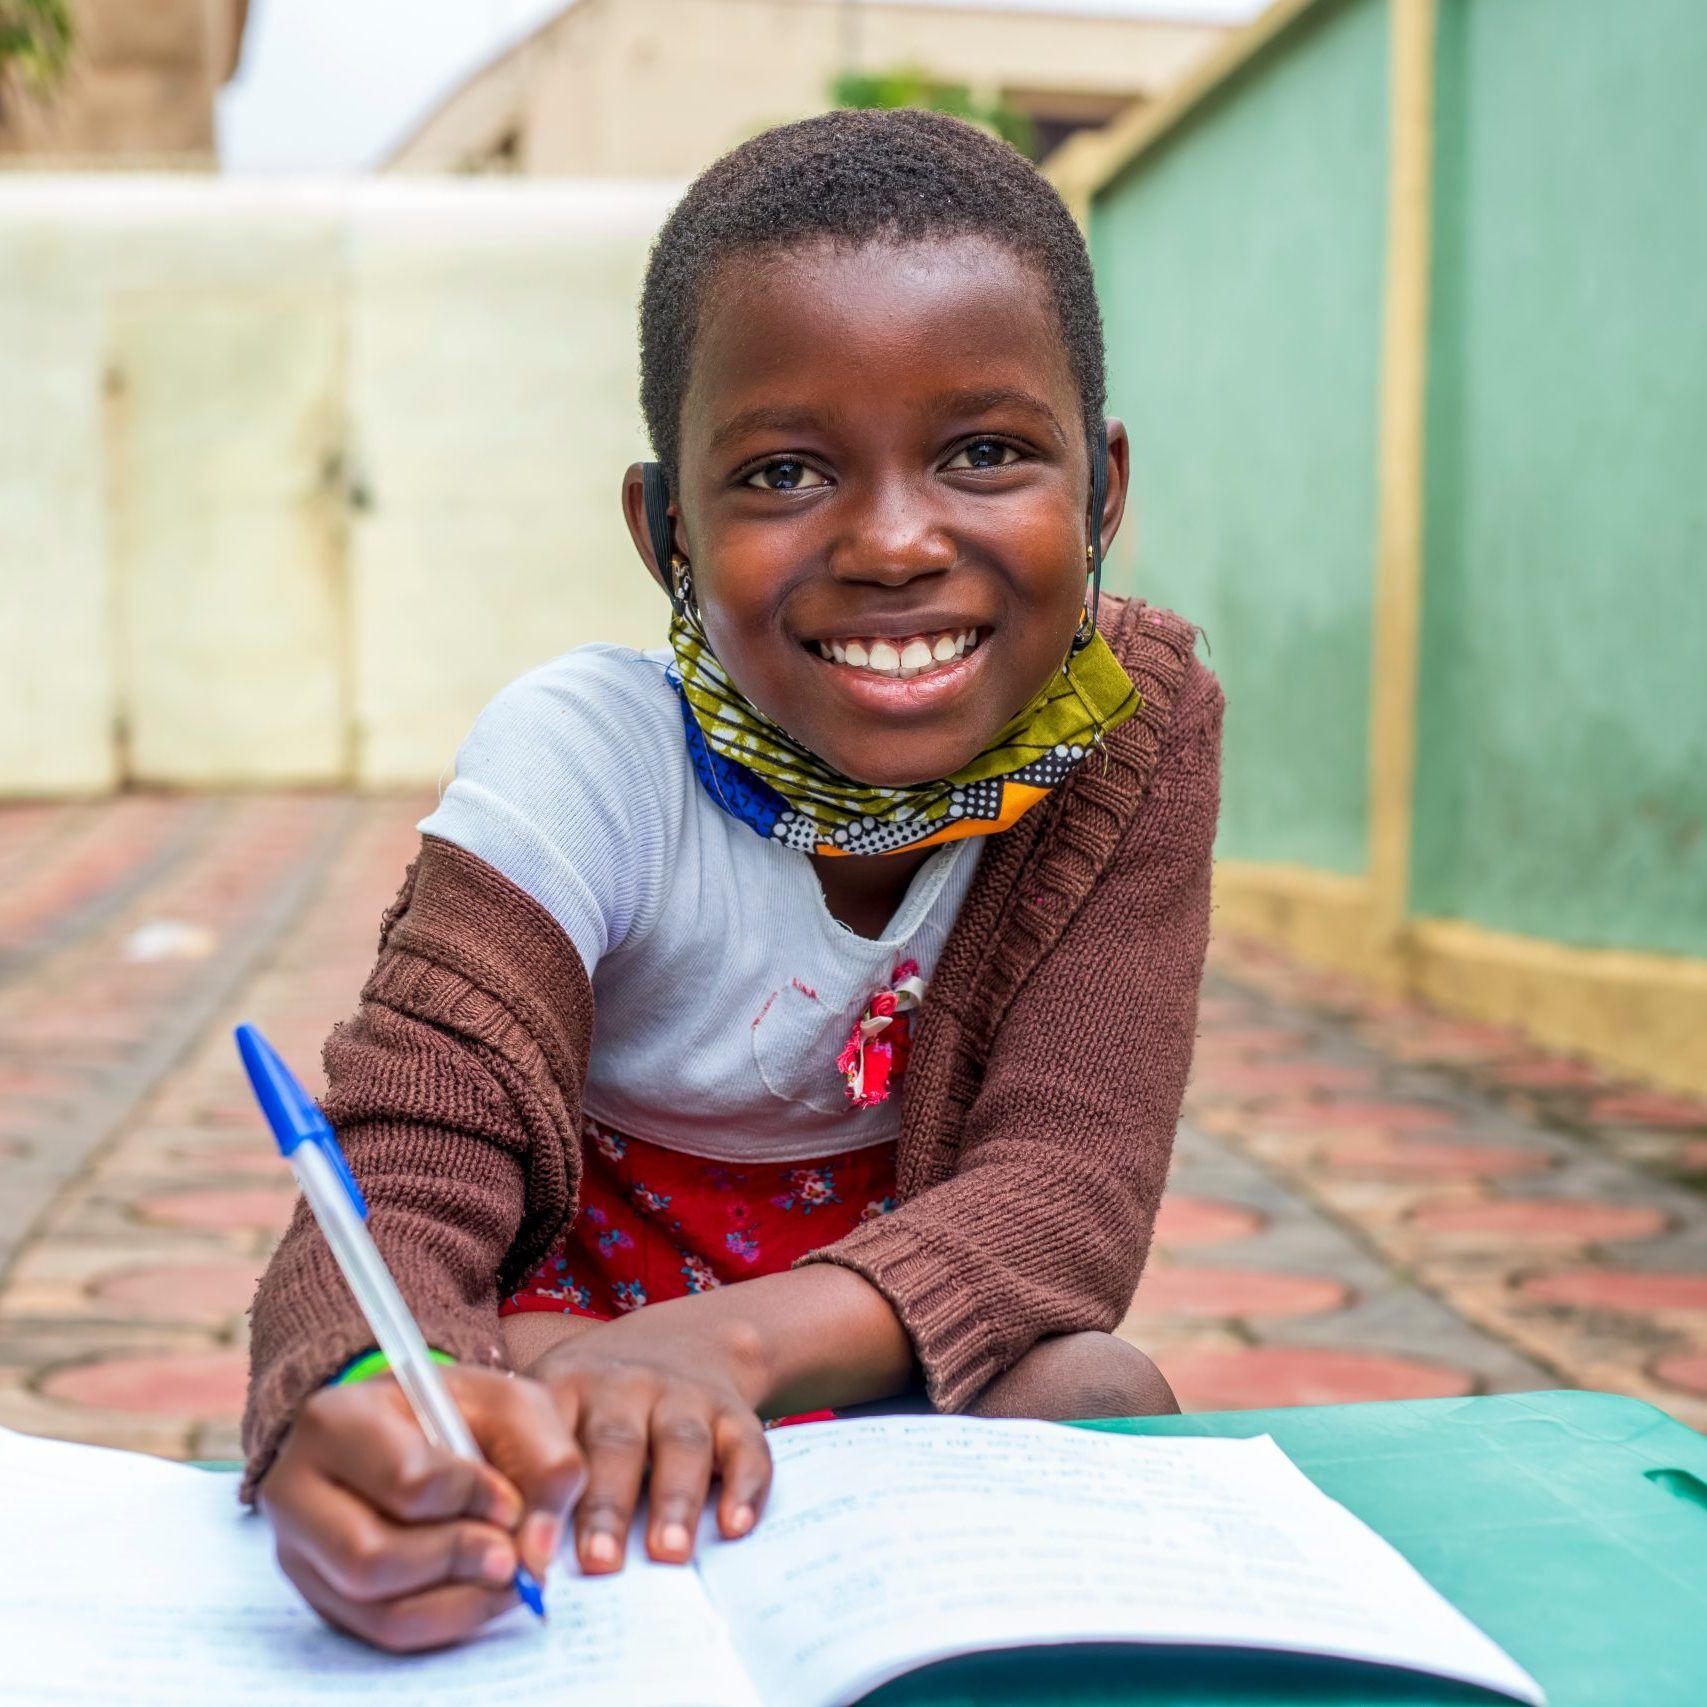 Close-up,Shot,Of,An,African,School,Girl,Smiling,,Studying,wearing,Homemade